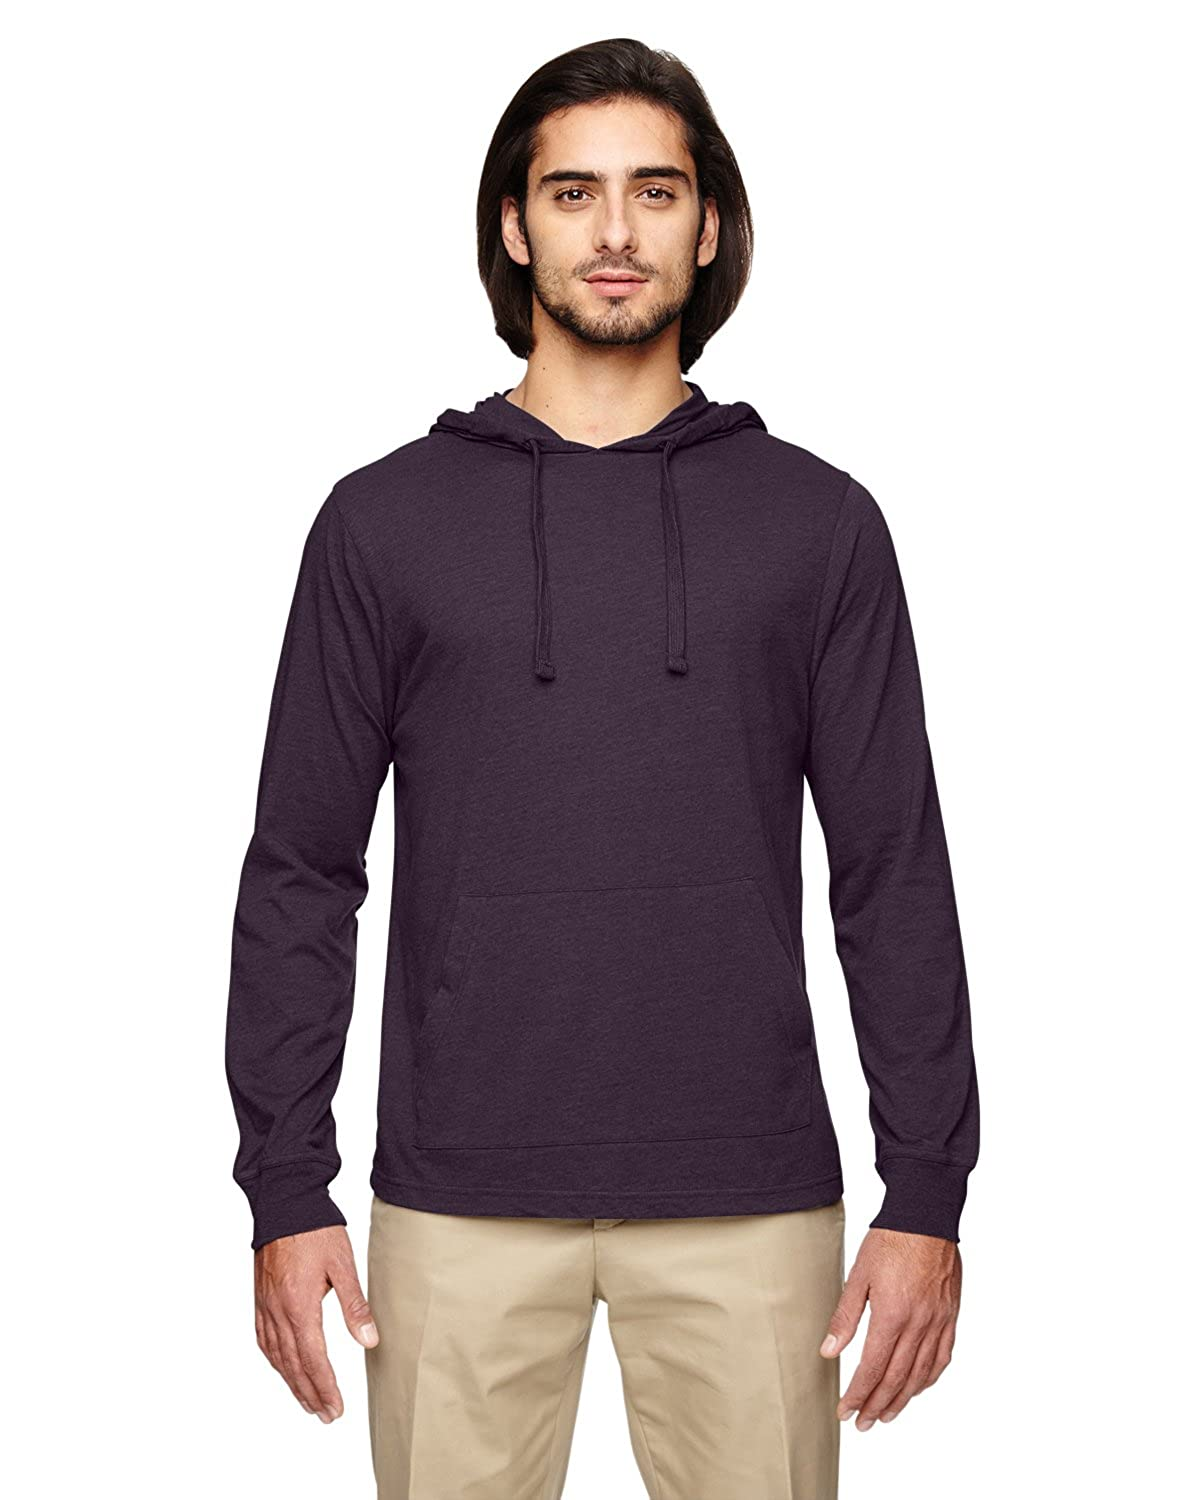 Bul A Product of econscious Unisex 4.25 oz Blended Eco Jersey Pullover Hoodie